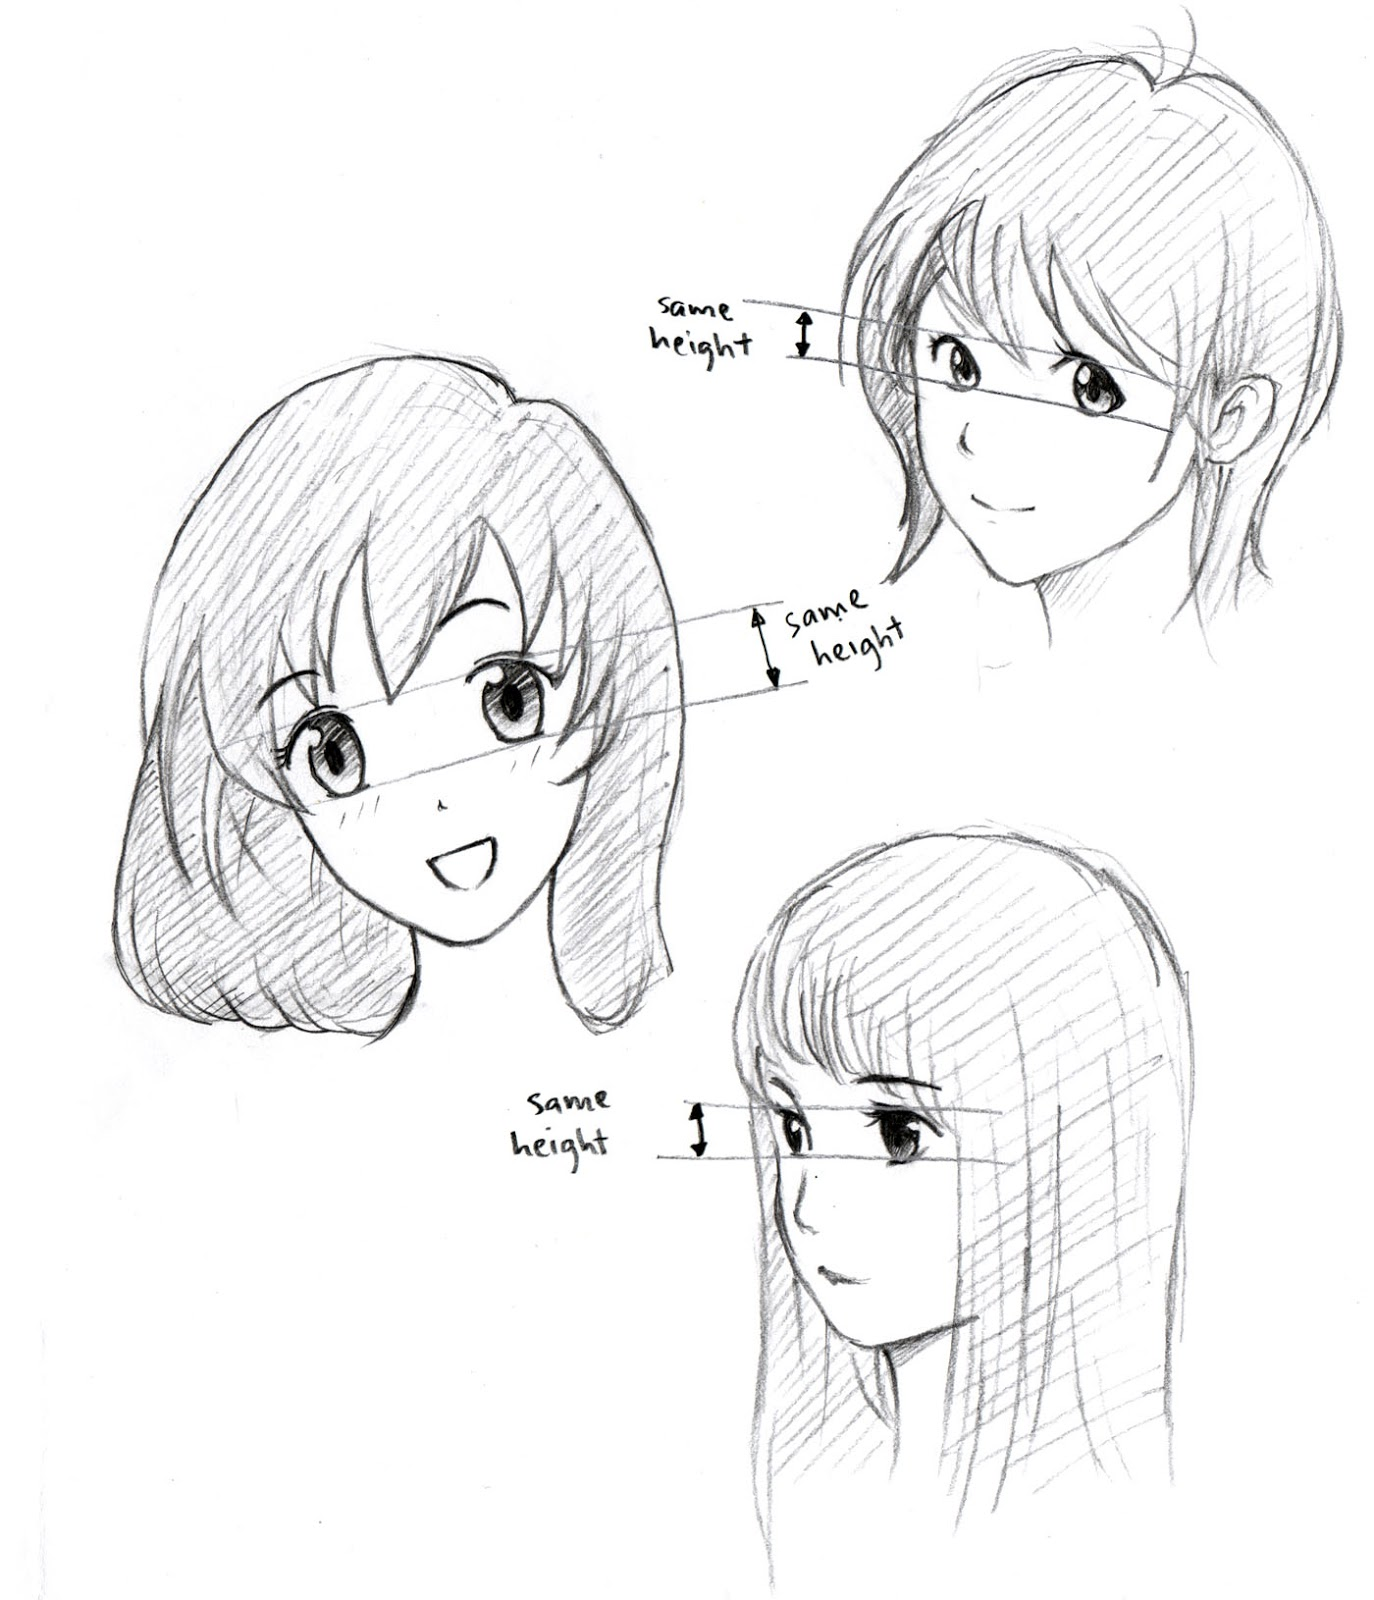 JohnnyBro's How To Draw Manga: How To Draw Manga Eyes (Part III